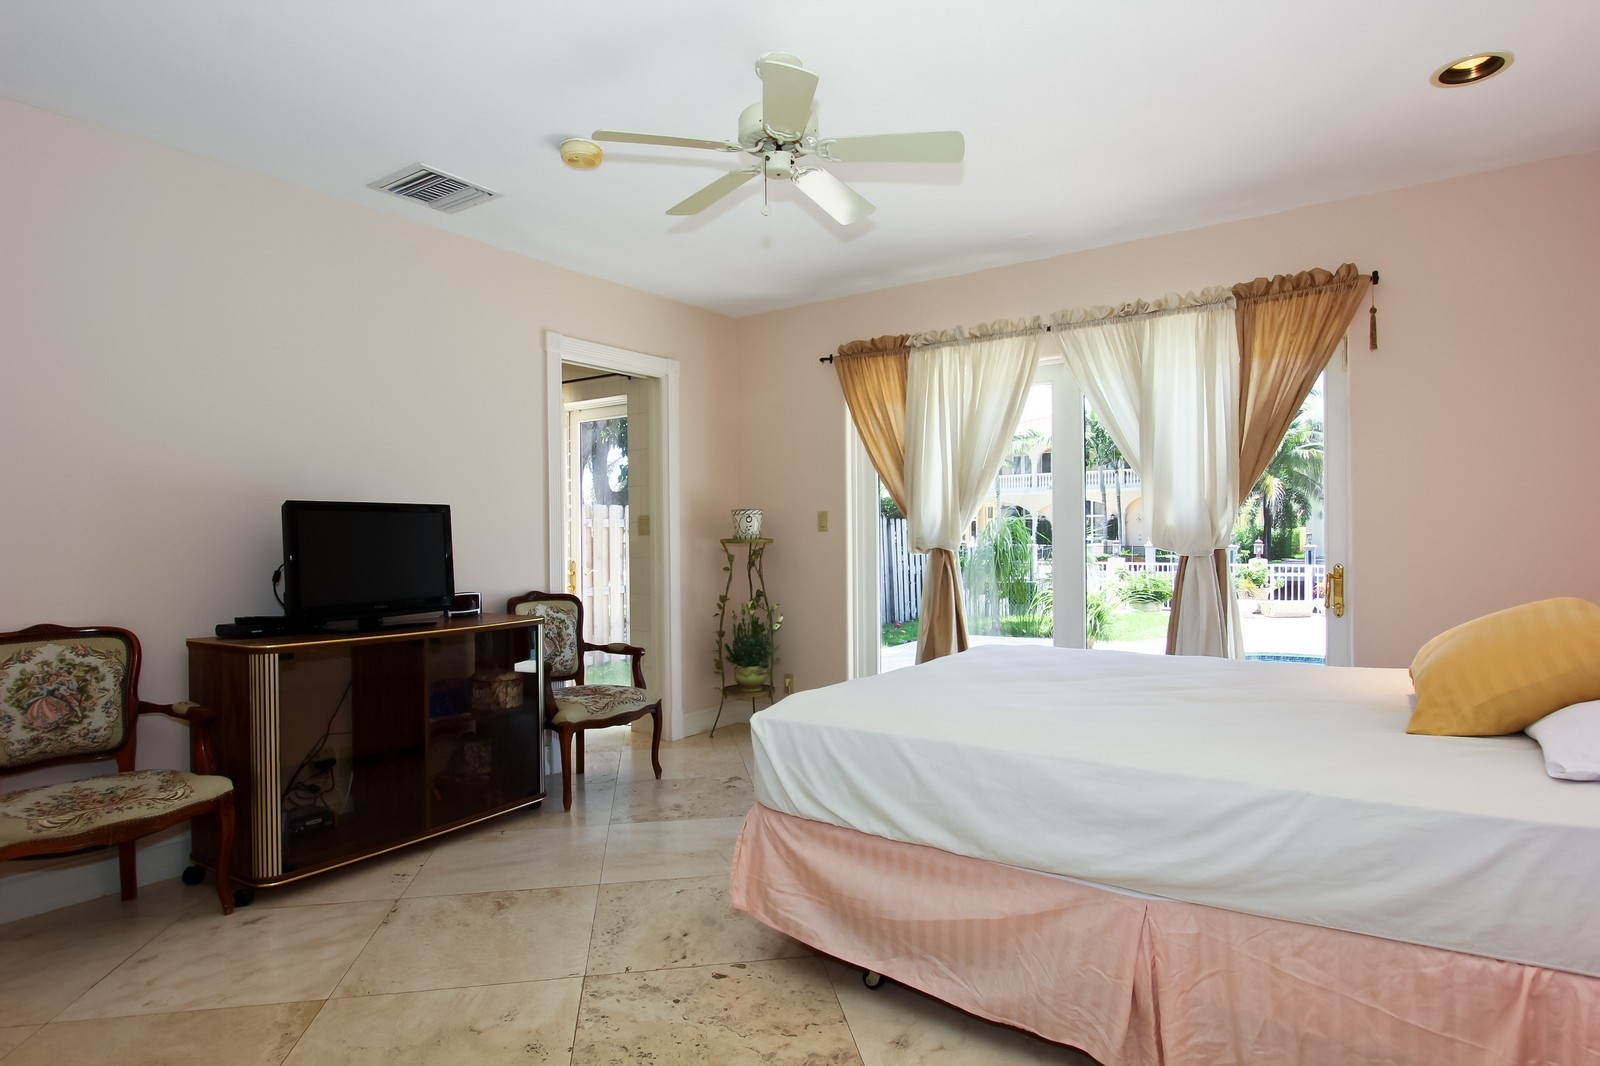 Real Estate Photography - 3310 NE 58th St, Fort Lauderdale, FL, 33308 - Bedroom